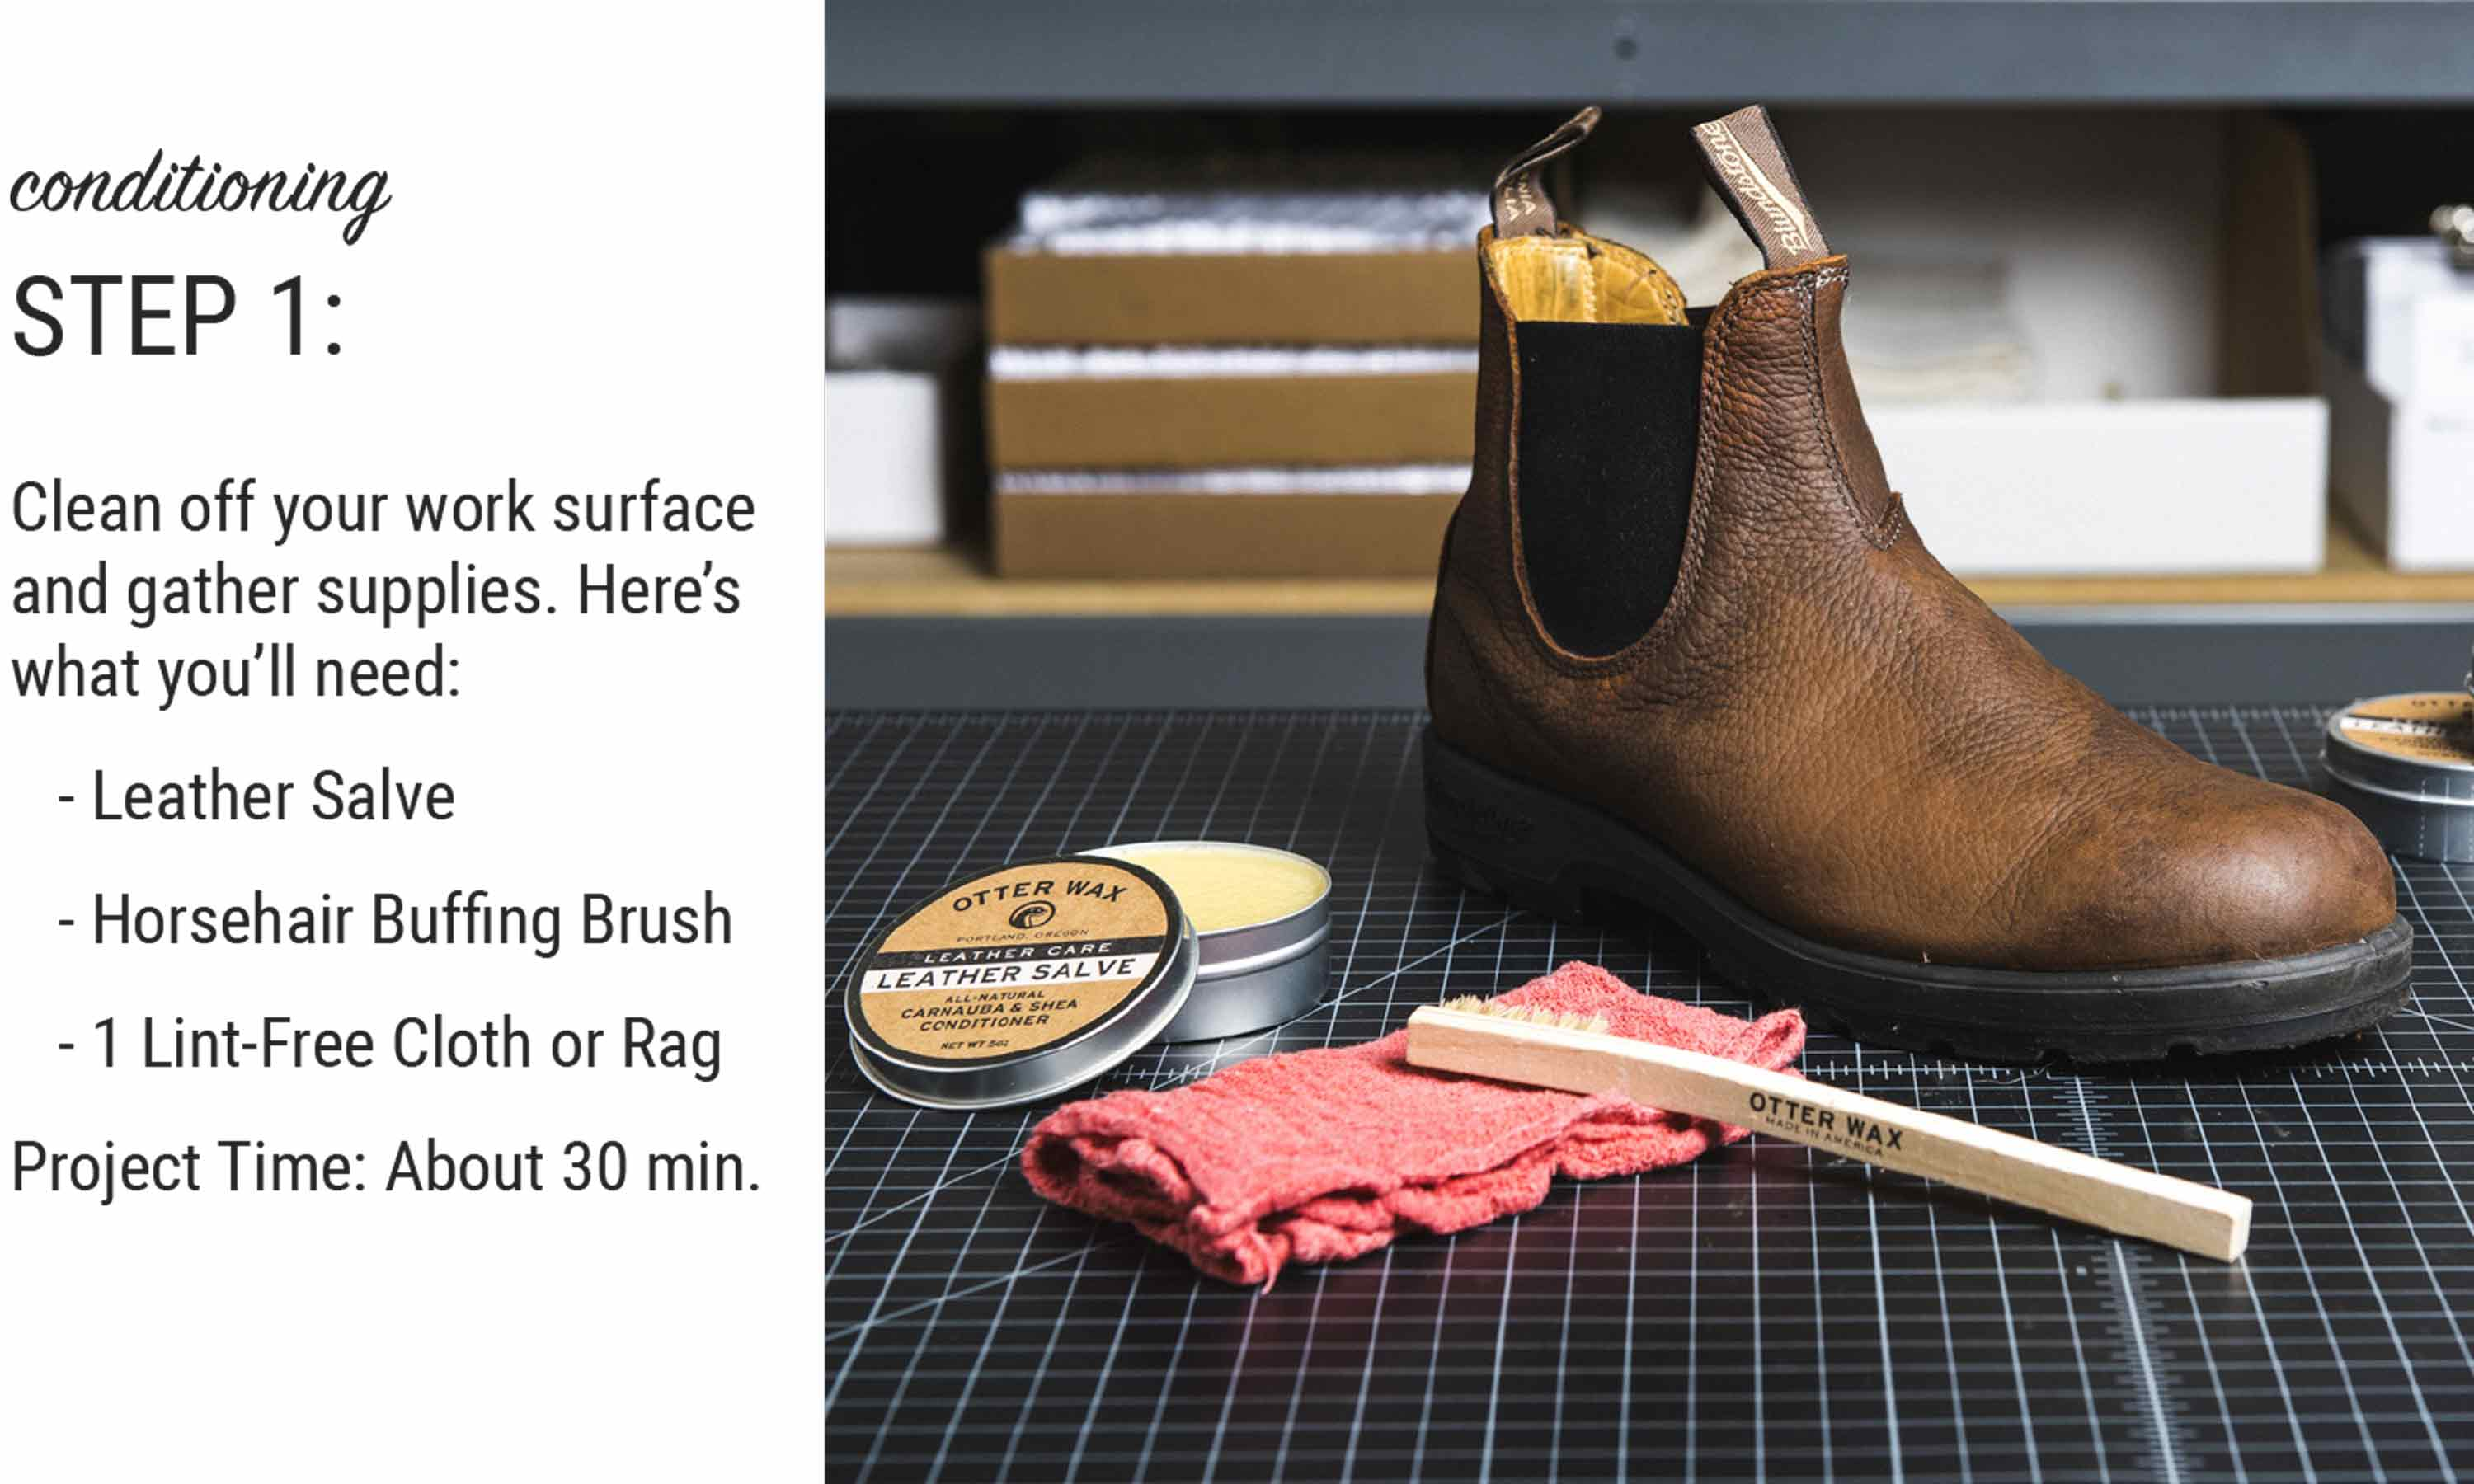 How To Condition Leather Blundstone Boots With Otter Wax Leather Salve